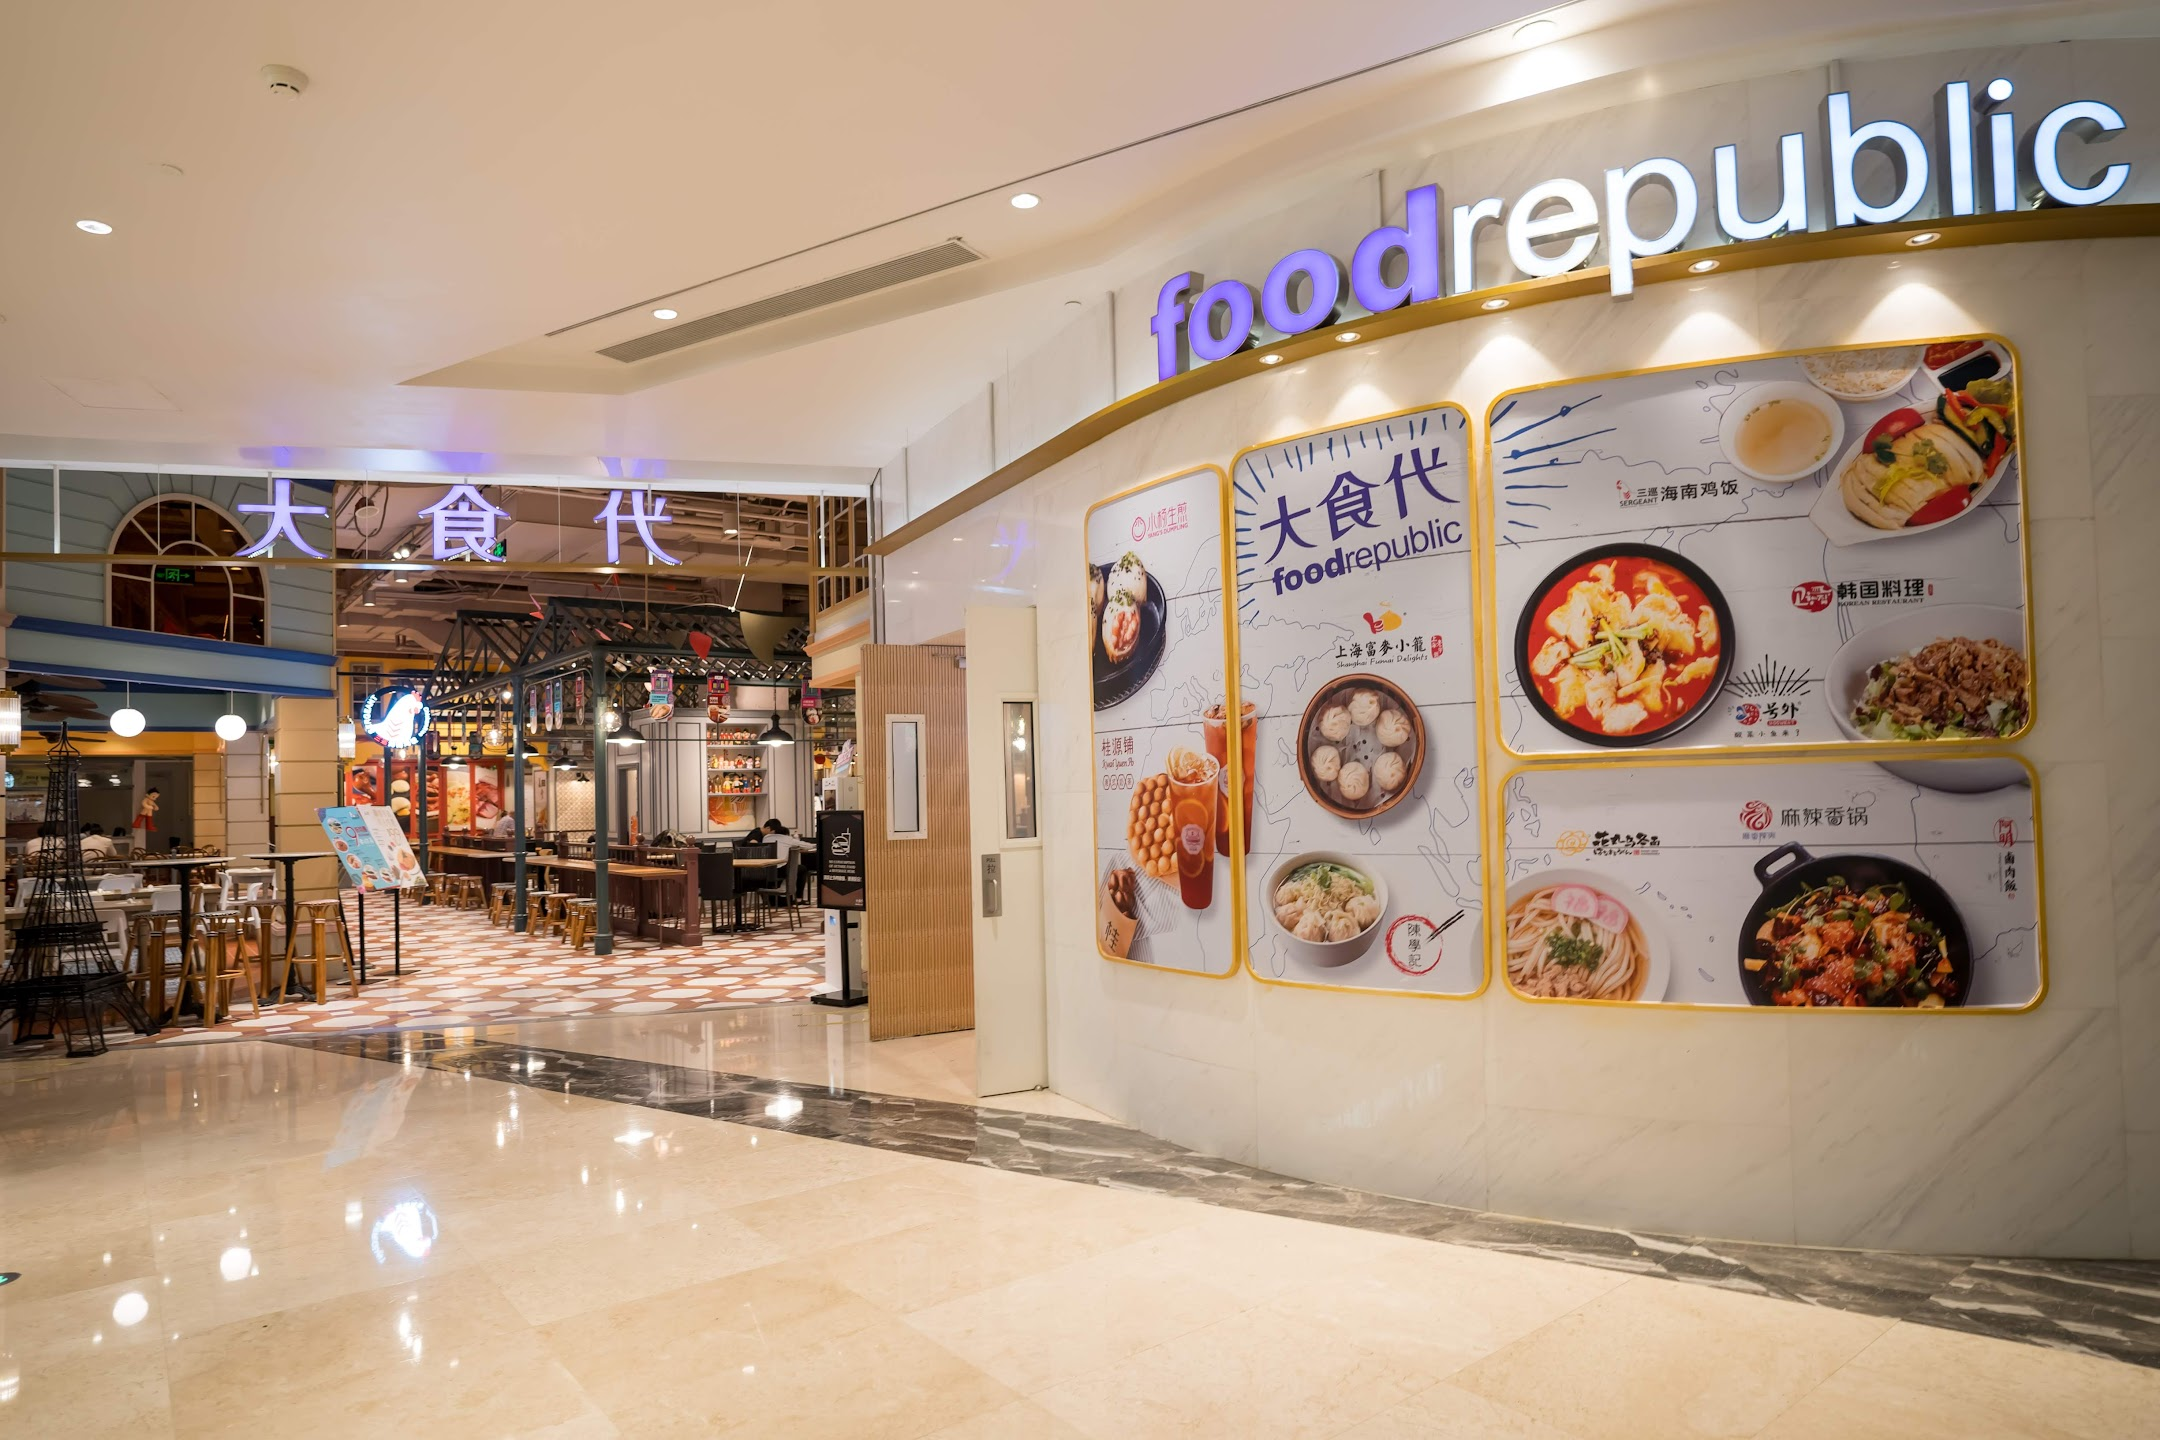 Shanghai tower Food Republic(大食代)1